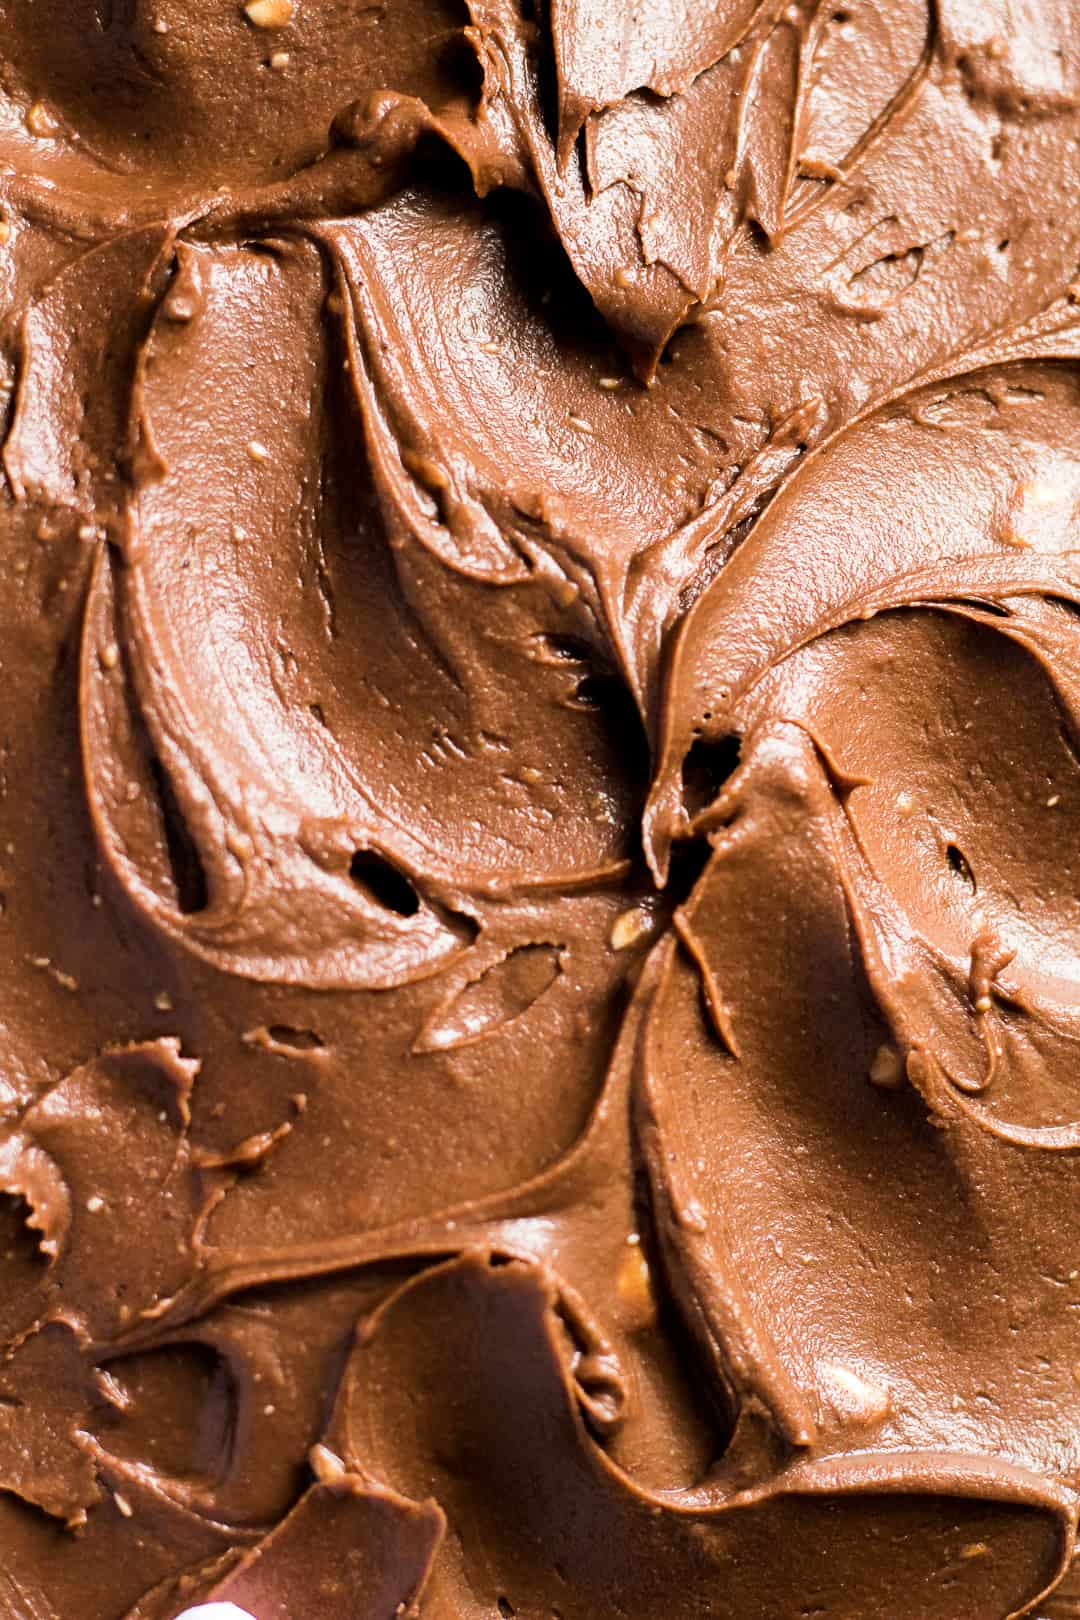 A close-up of chocolate cream cheese buttercream frosting.